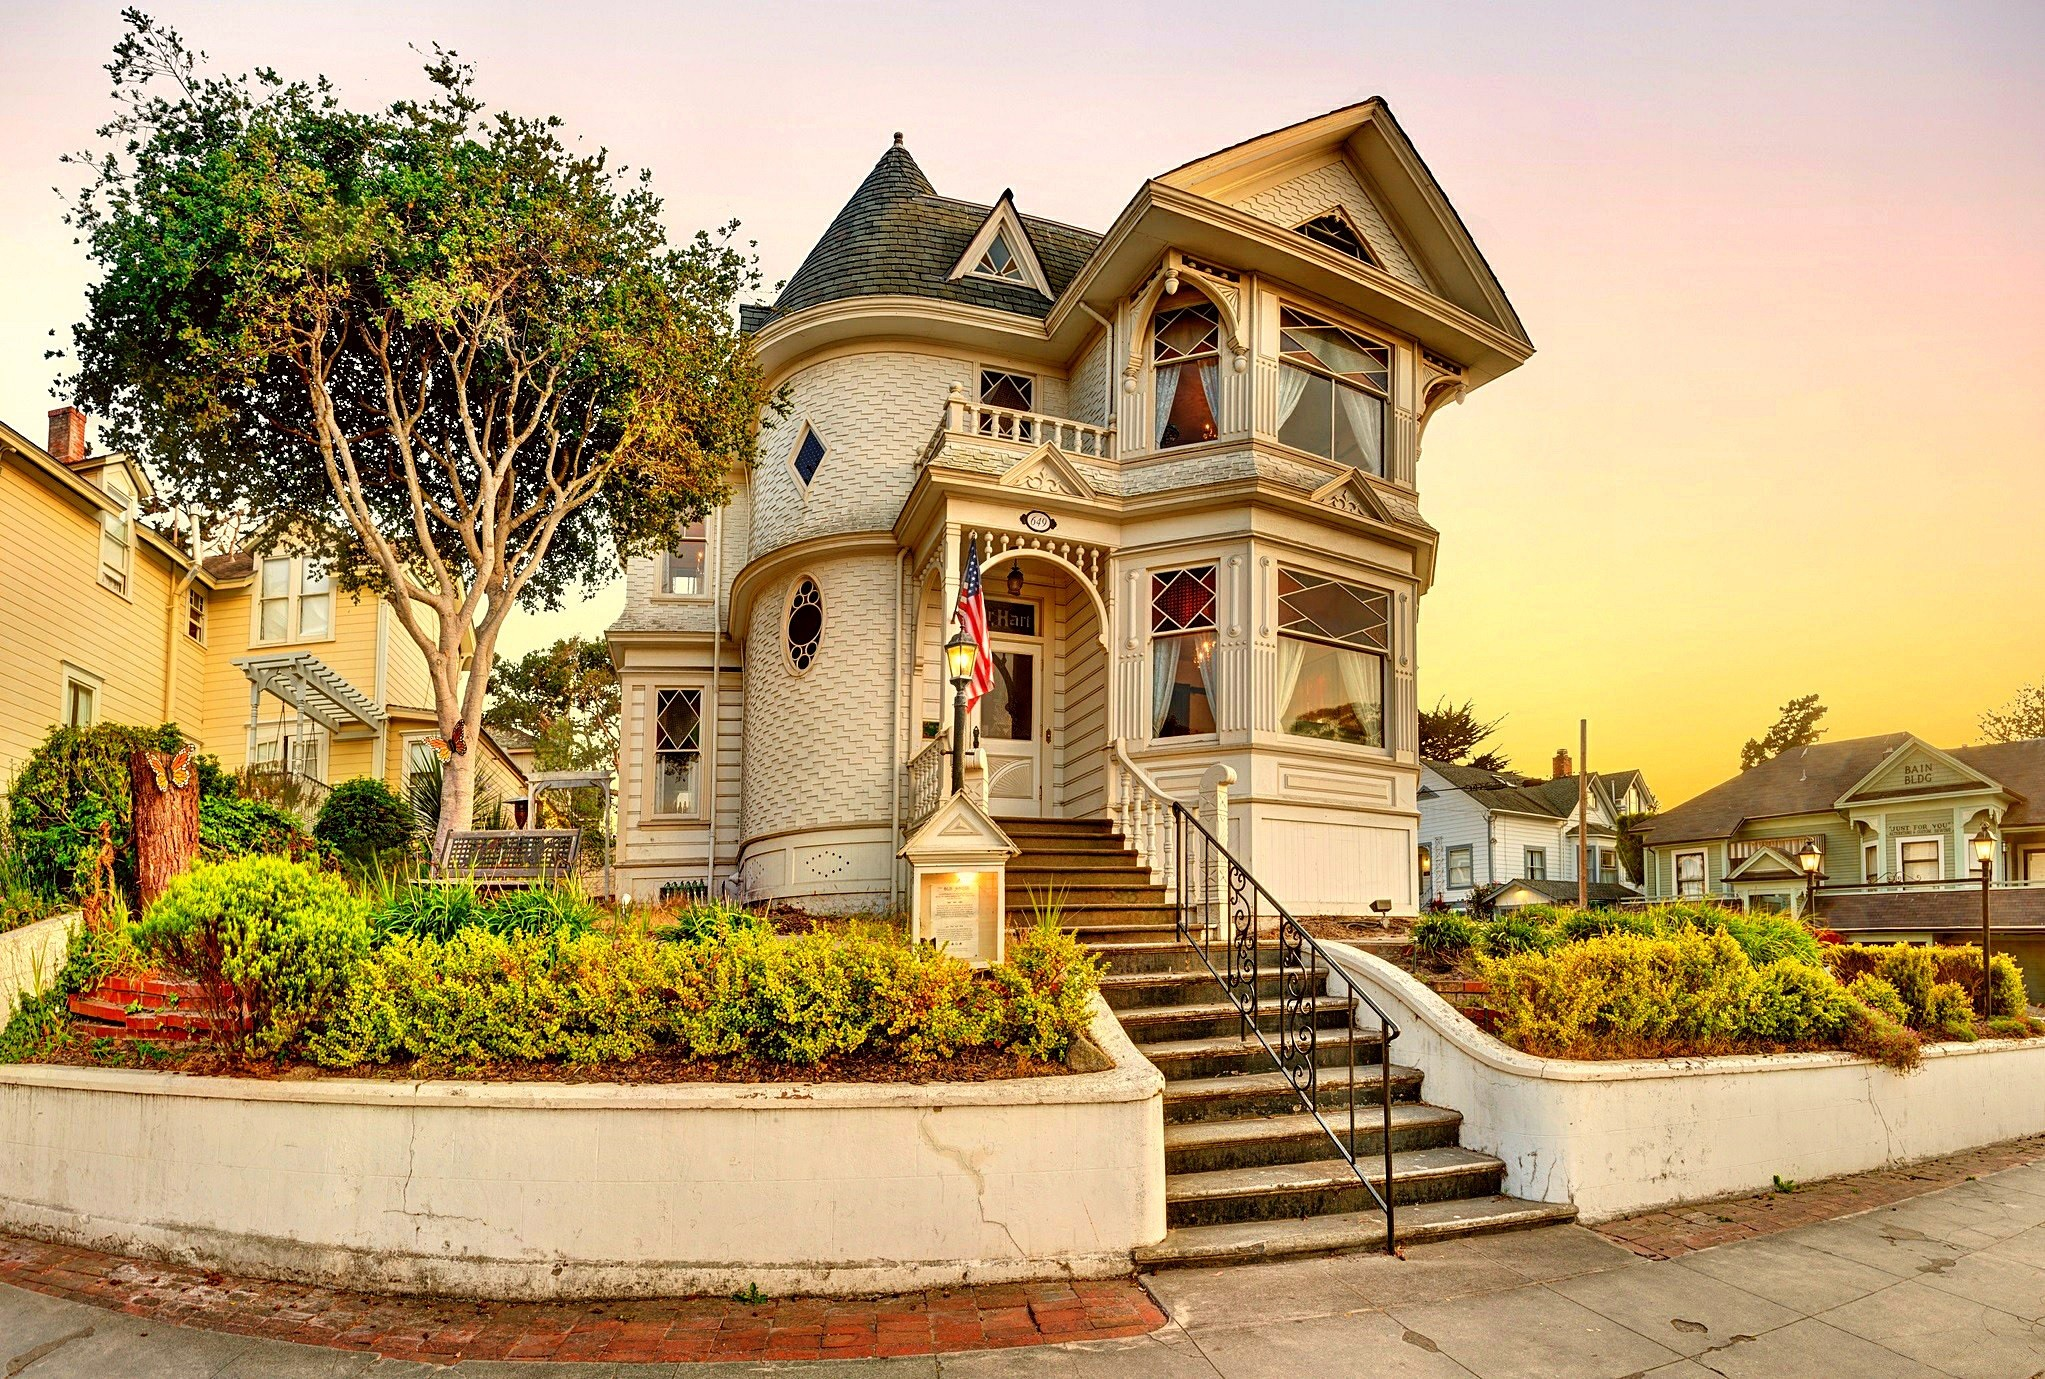 2045x1379 beautiful victorian house desktop background